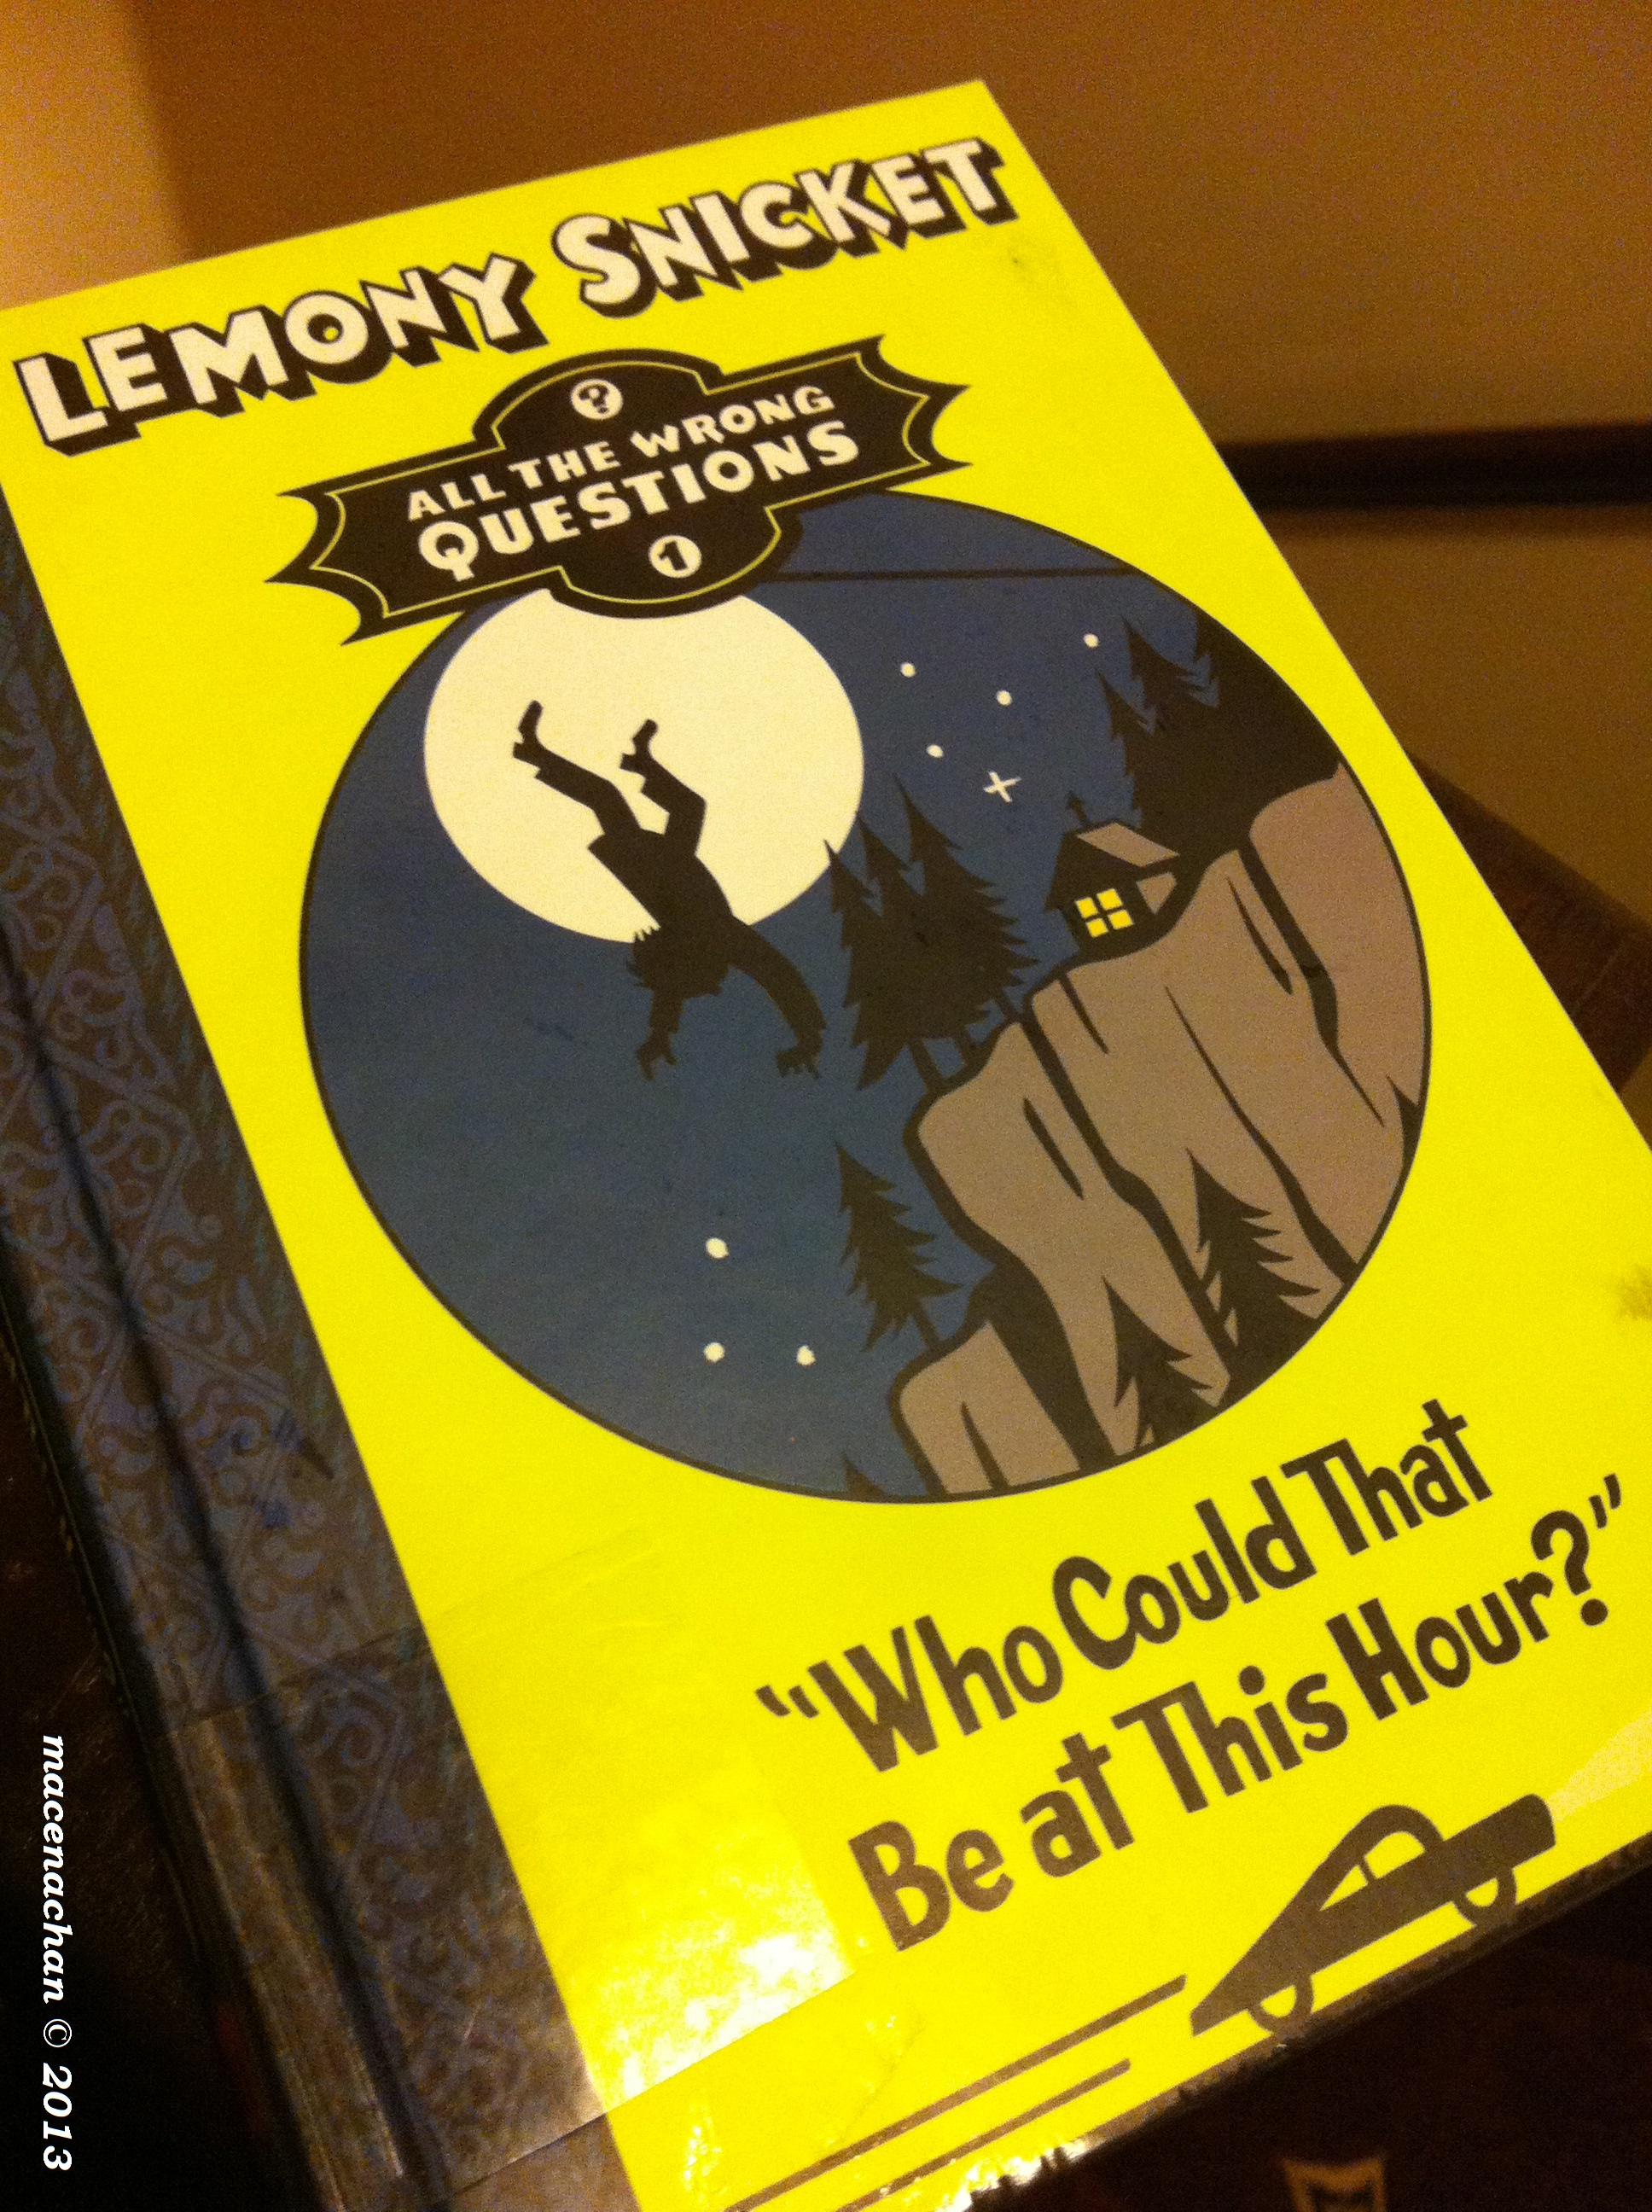 Book Review: ([1] All The Wrong Questions) Who Could That Be at This Hour?  by Lemony Snicket